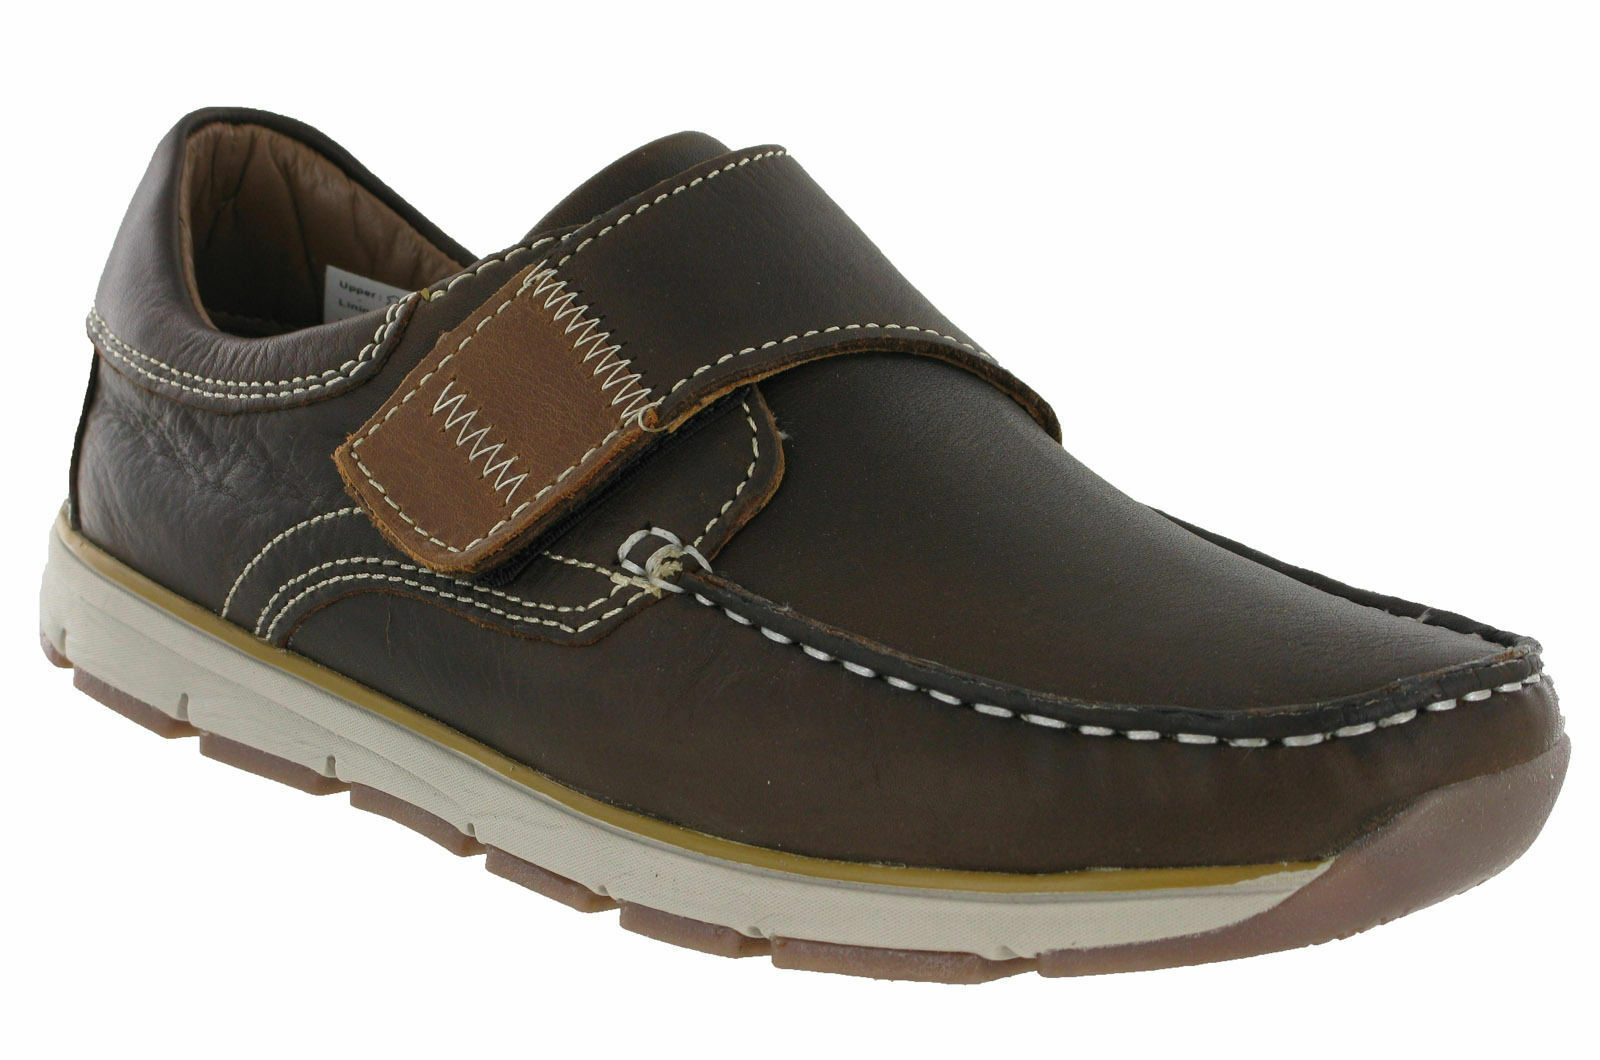 Roamers Moccasin Boat shoes Touch Fastening Leather Lined Lightweight Mens